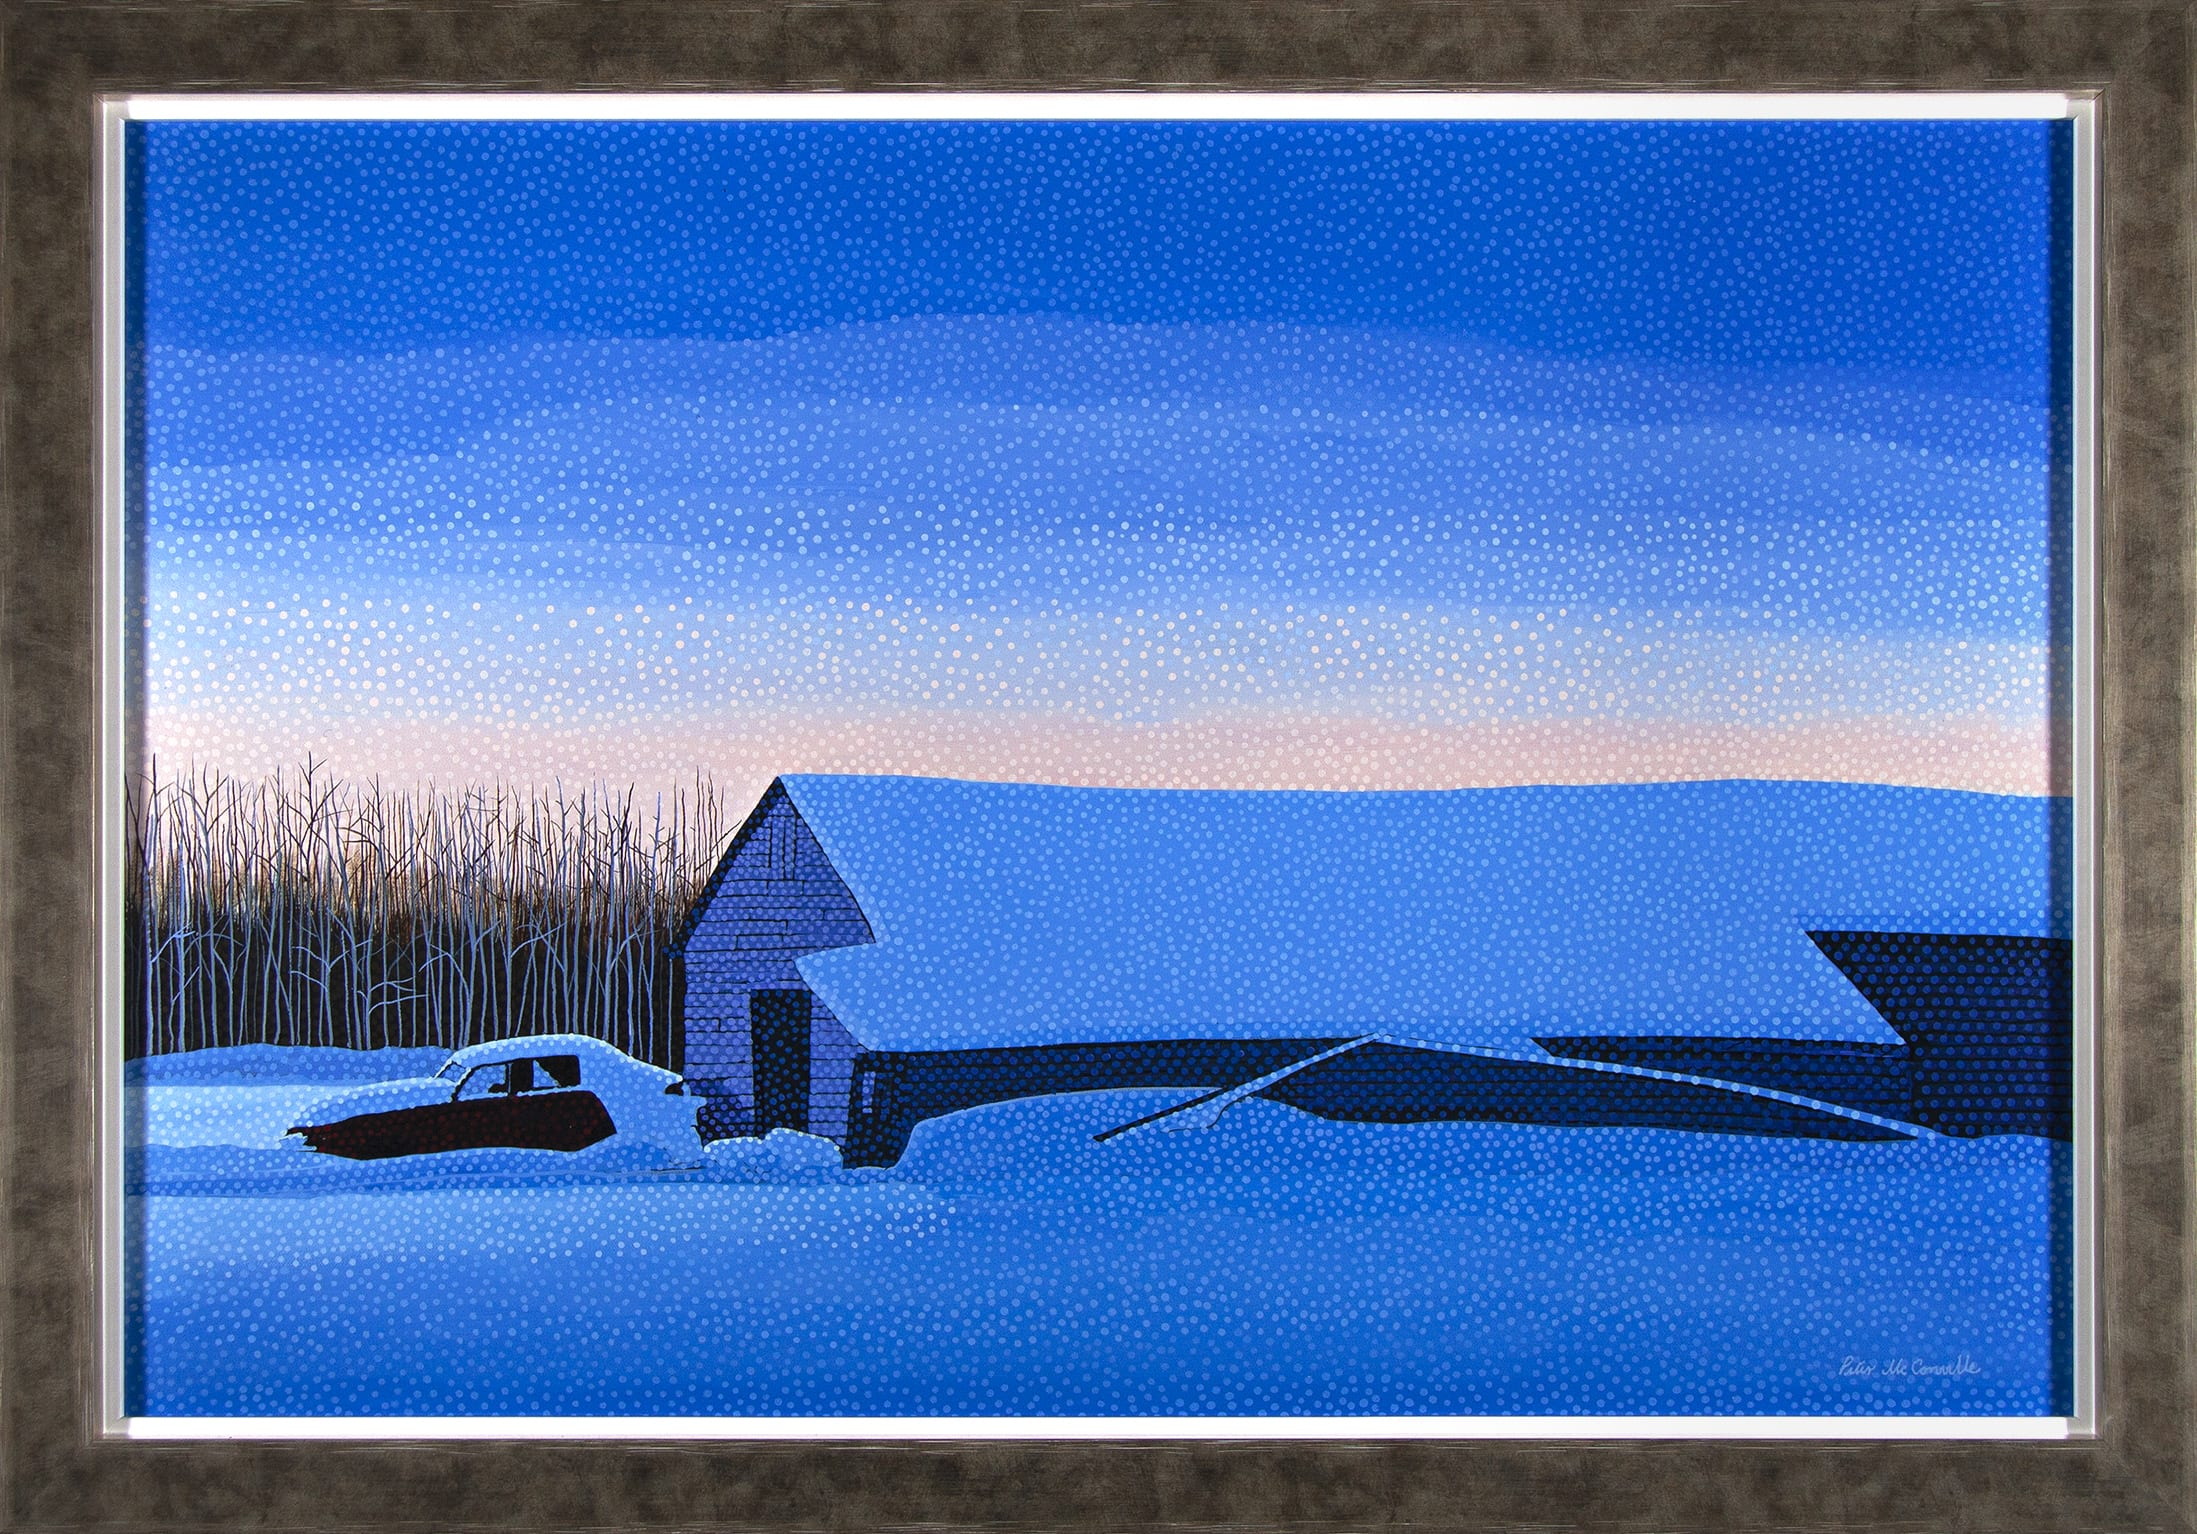 Snow Covered - Peter McConville Image 2